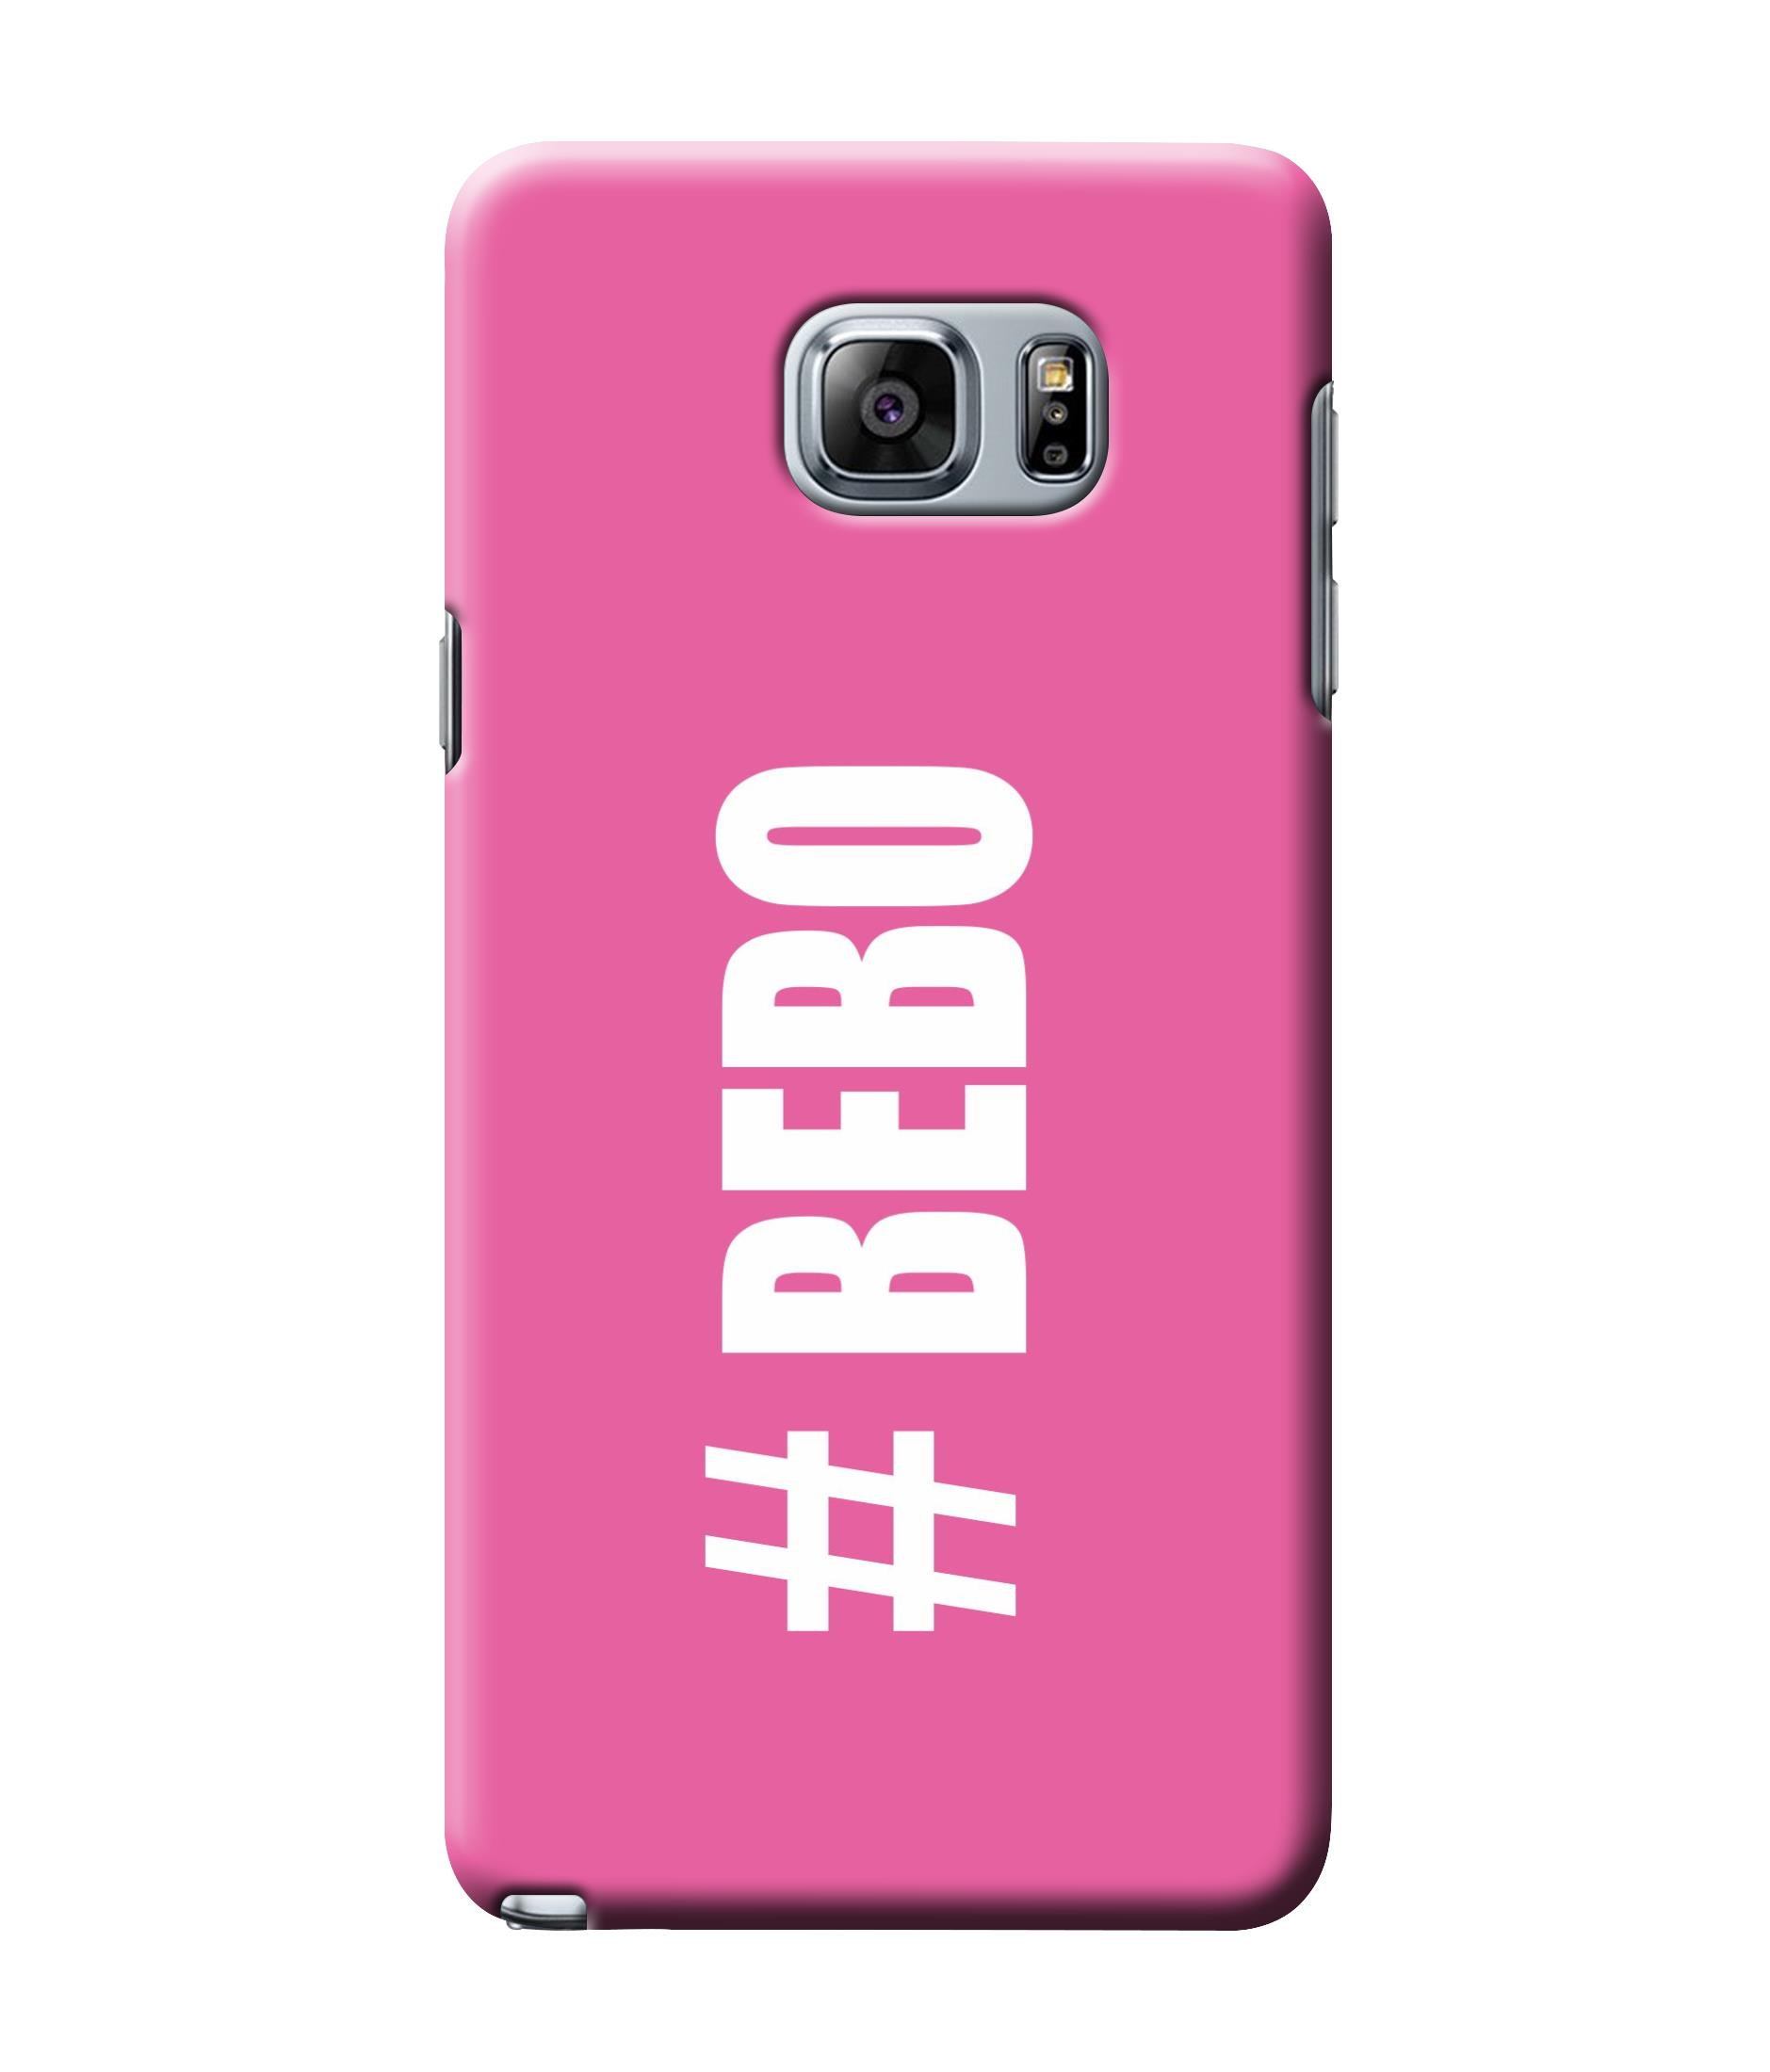 caseophile2 Samsung Galaxy Note 5 Bebo Pink Mobile Case